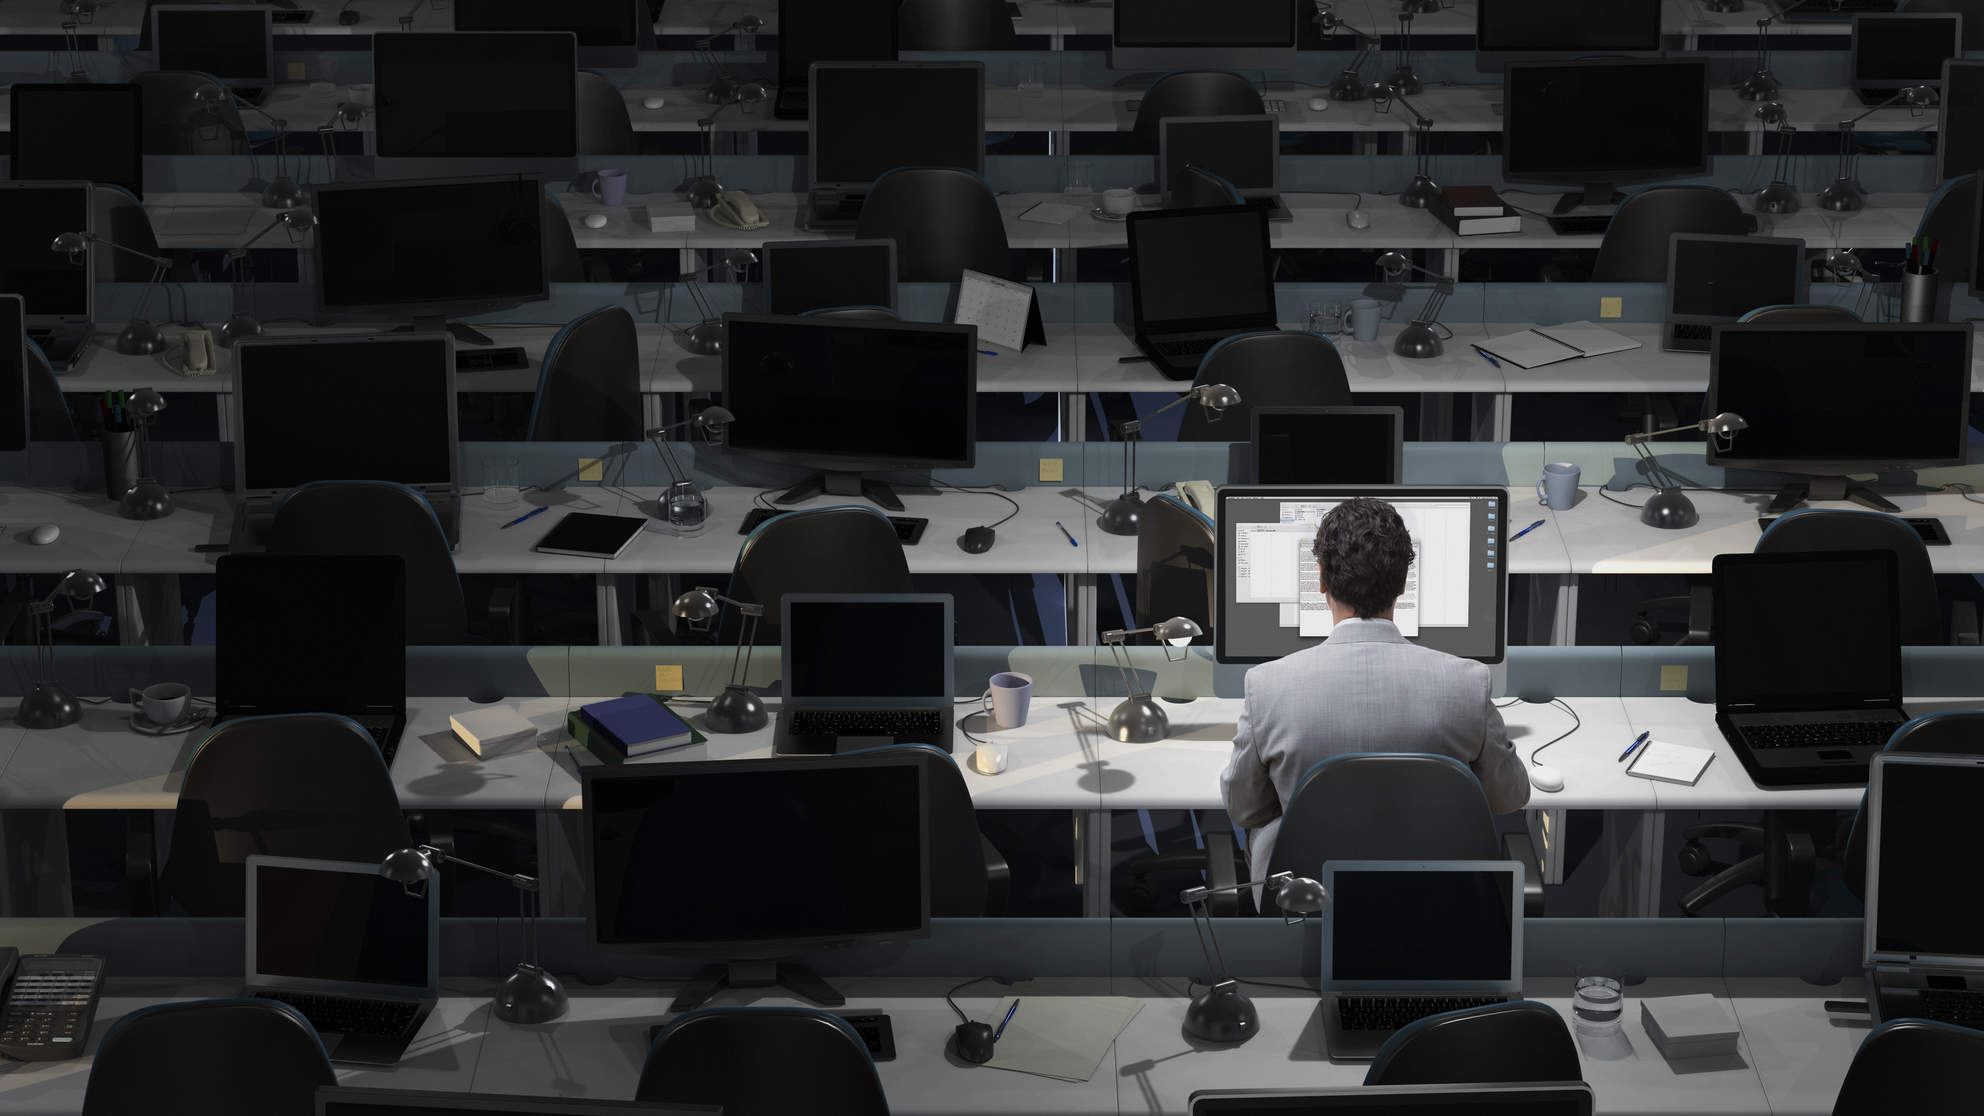 Working Long Hours Could Increase Your Risk of Stroke and Heart Disease